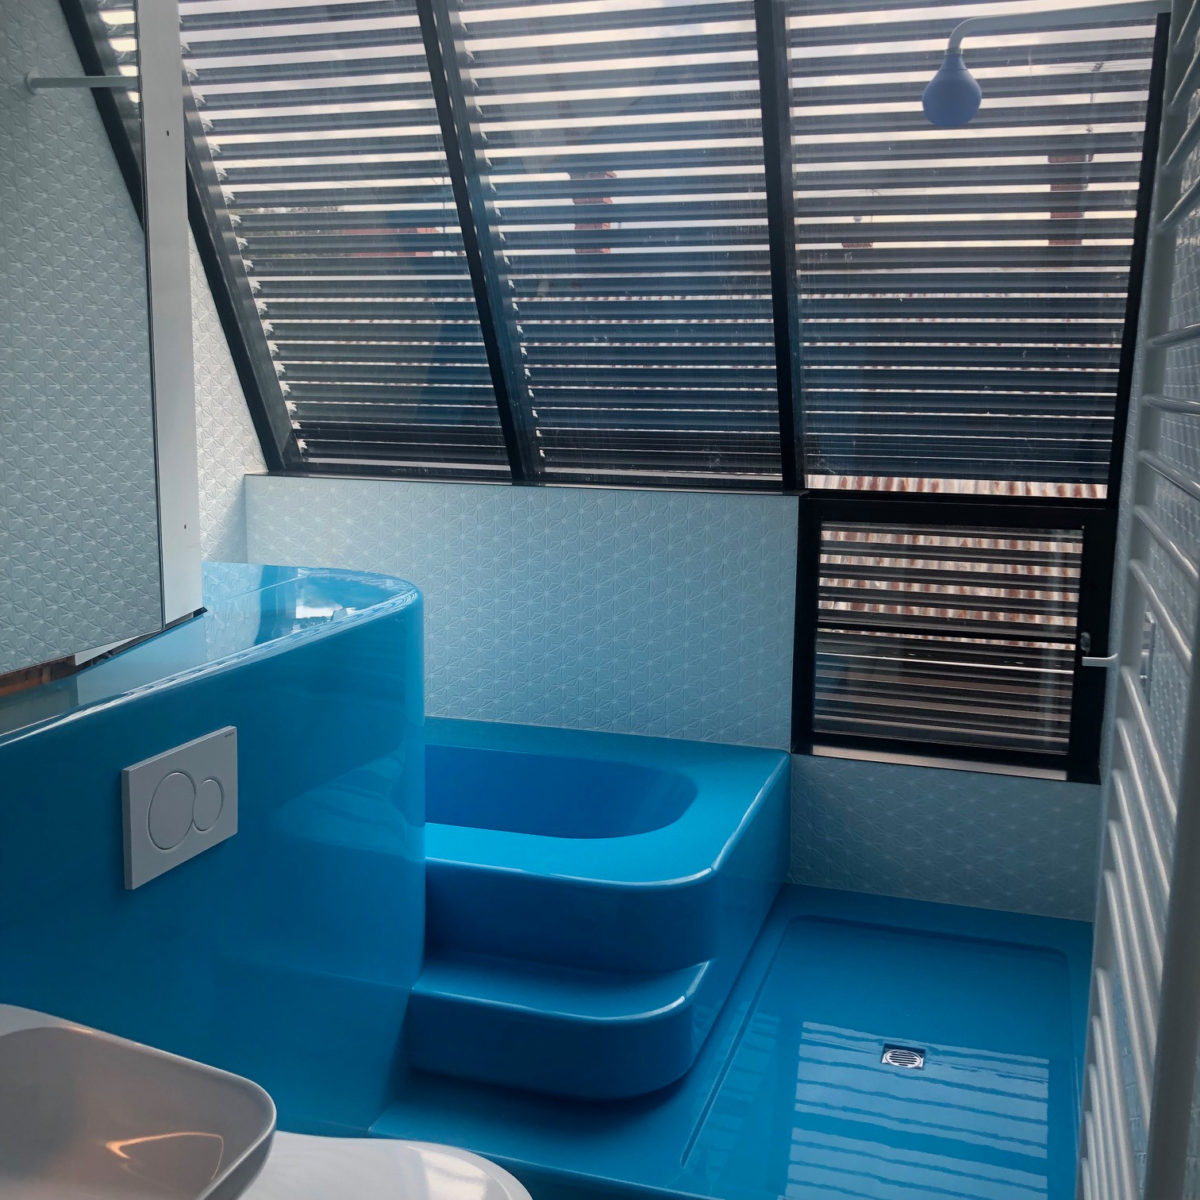 Bright blue floor and bathtub in bathroom with white tiles and louvered windows